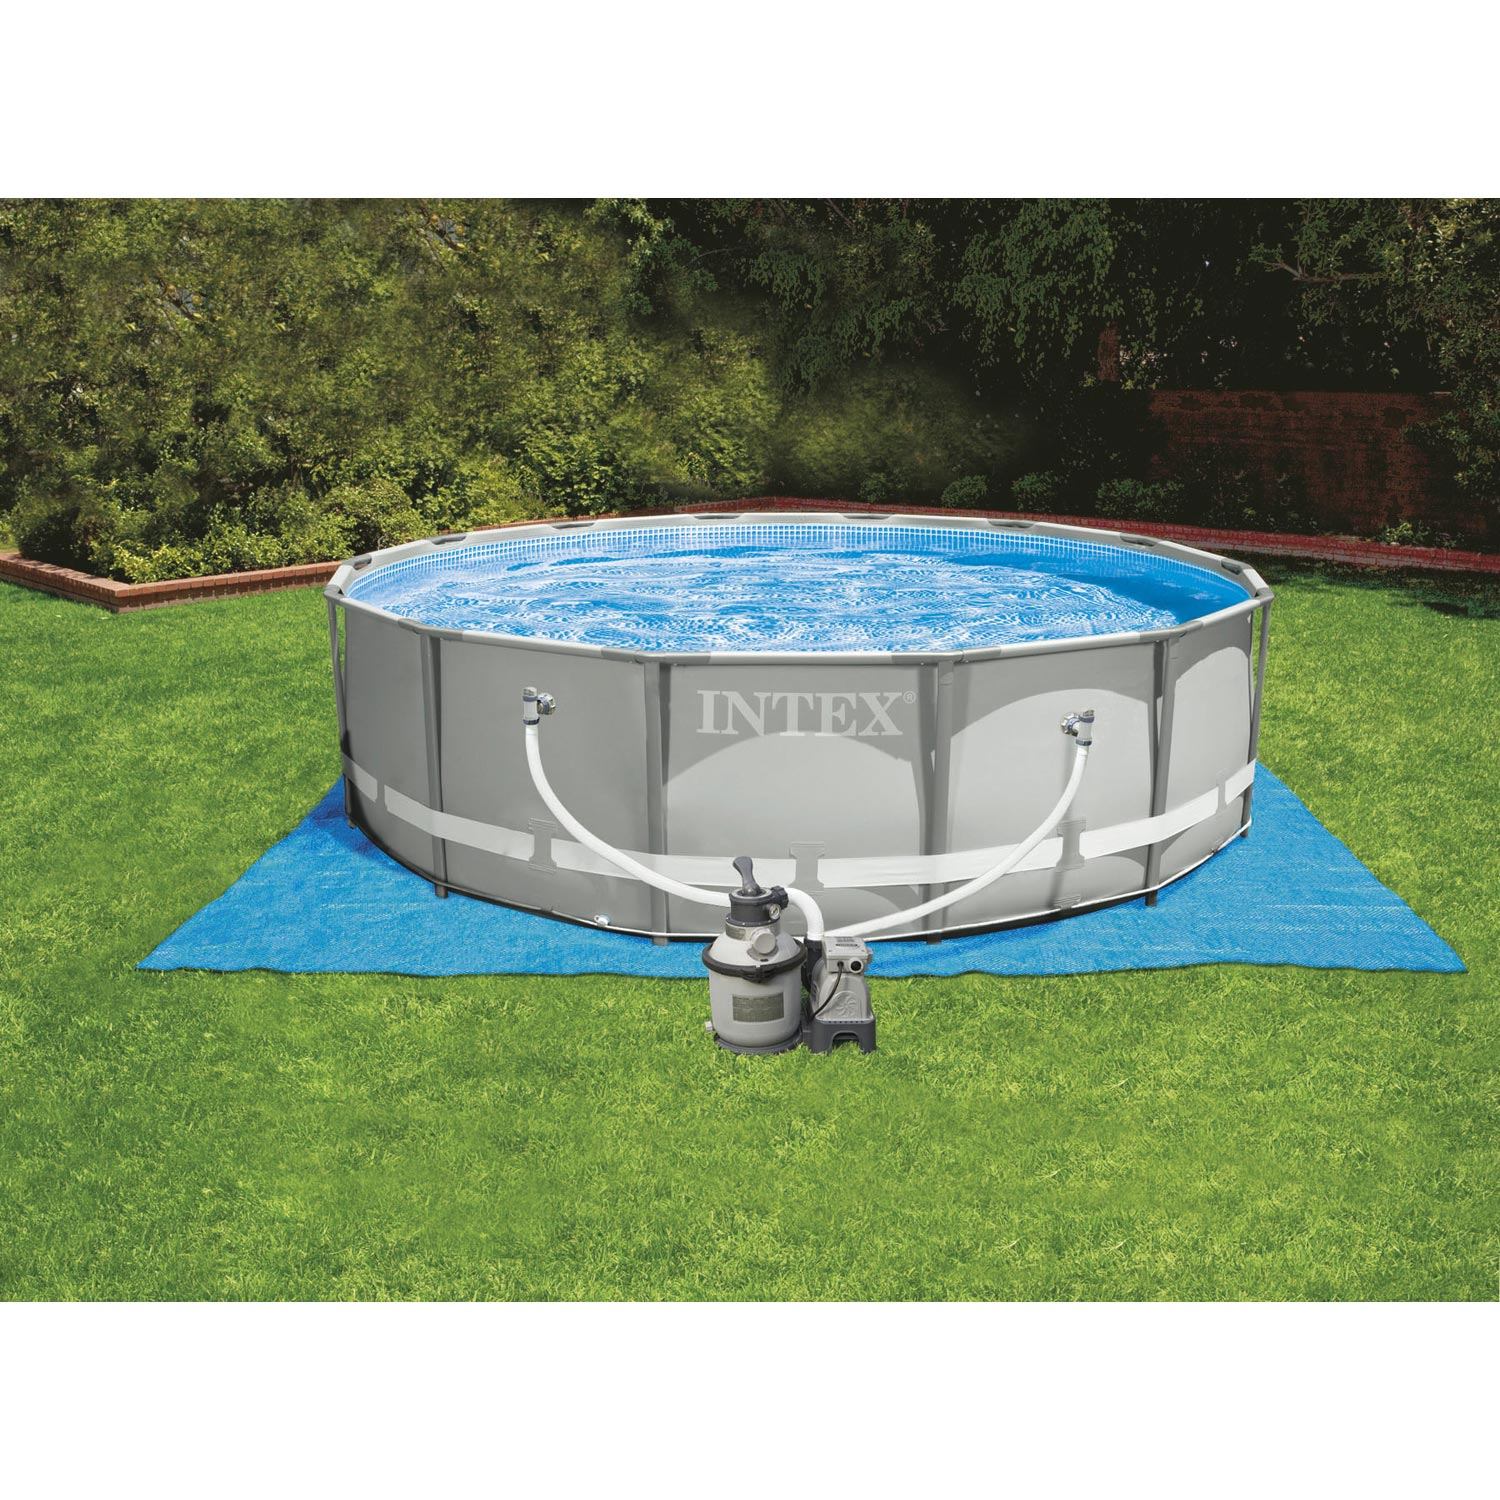 Piscine hors sol autoportante tubulaire ultra frame intex for Piscine hors sol